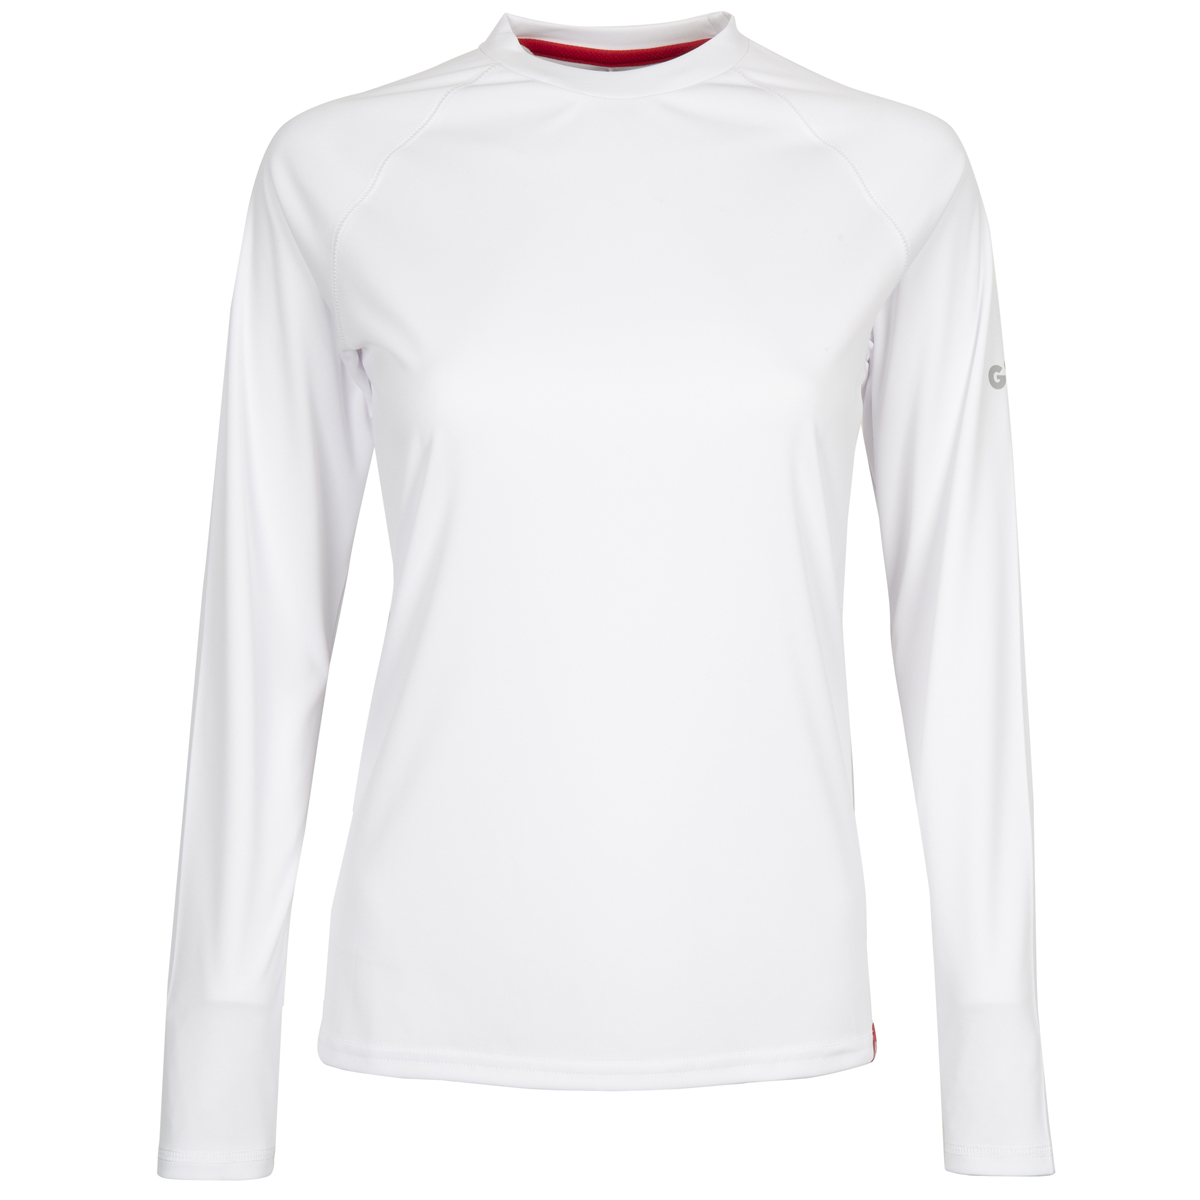 GILL WOMEN'S UV TEC LONG SLEEVE TEE (UV011W)